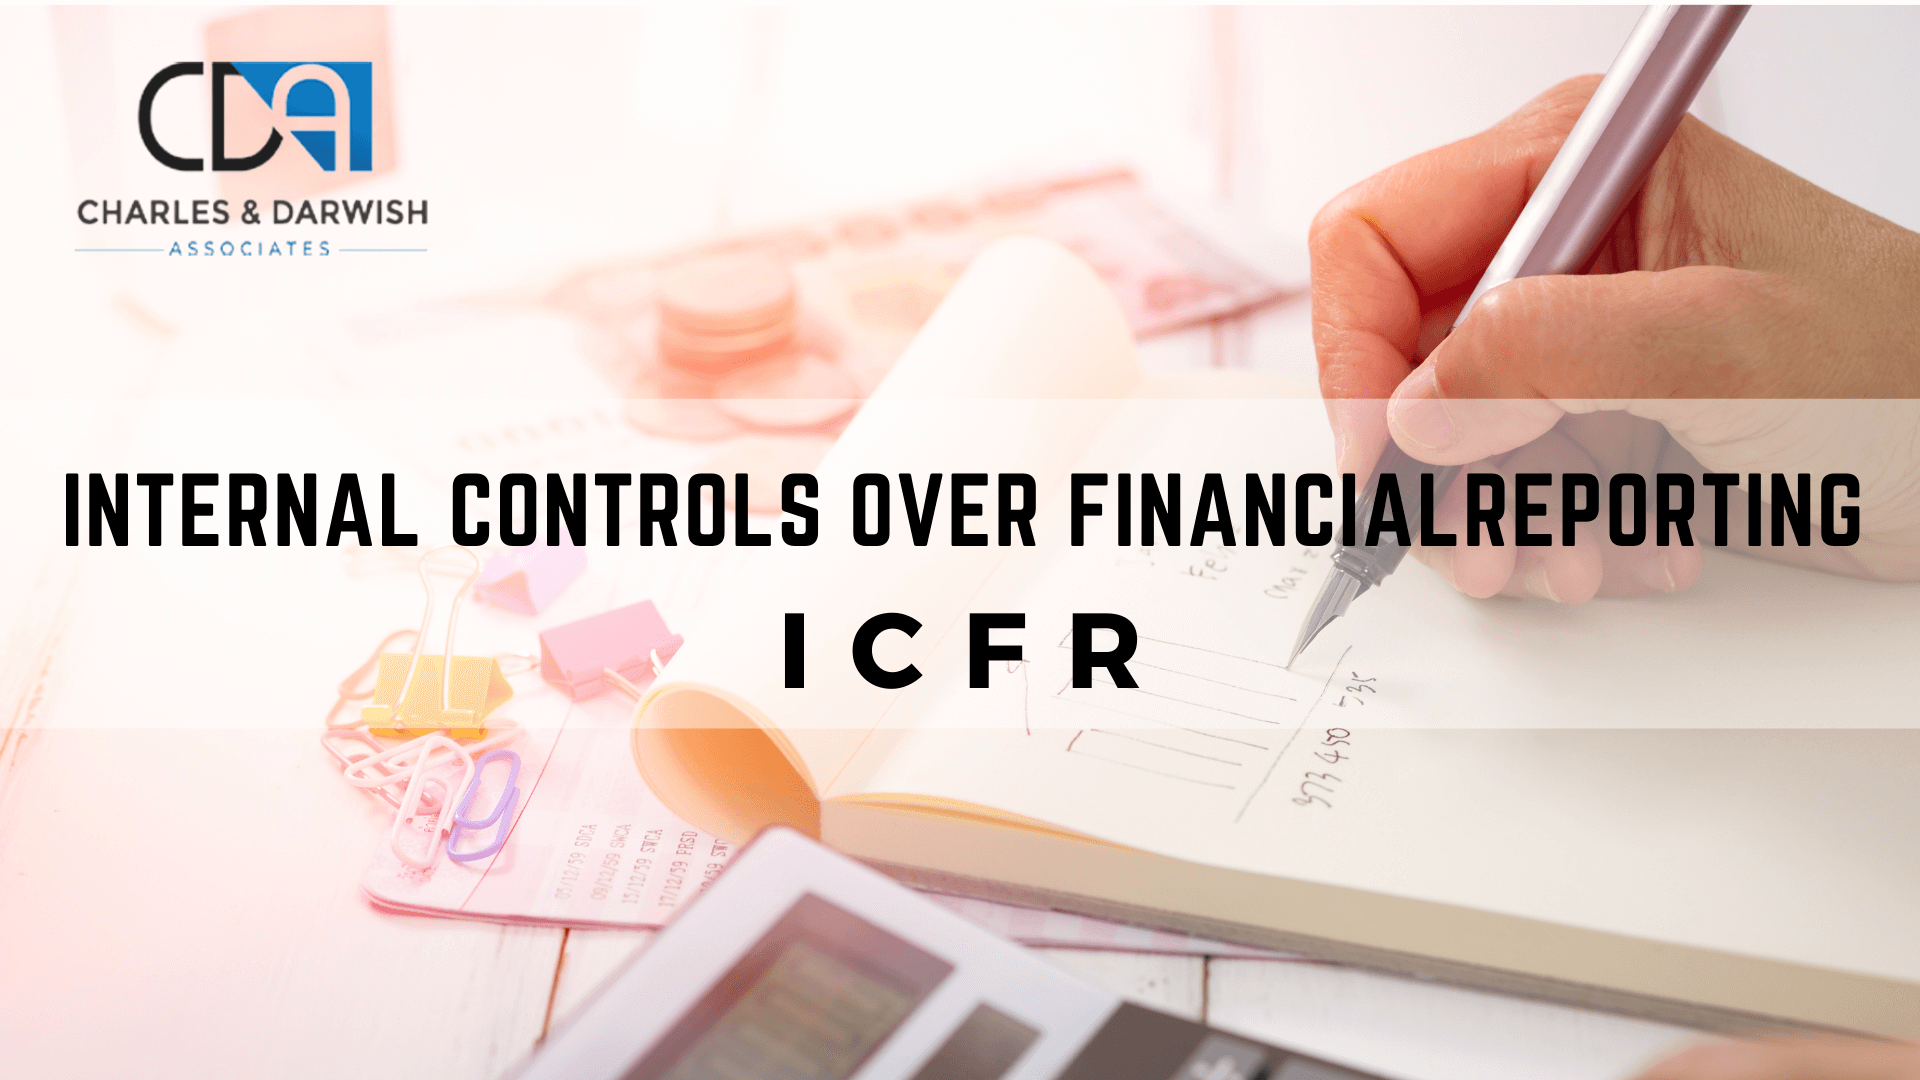 Everything About Internal Controls Over Financial Reporting/ICFR